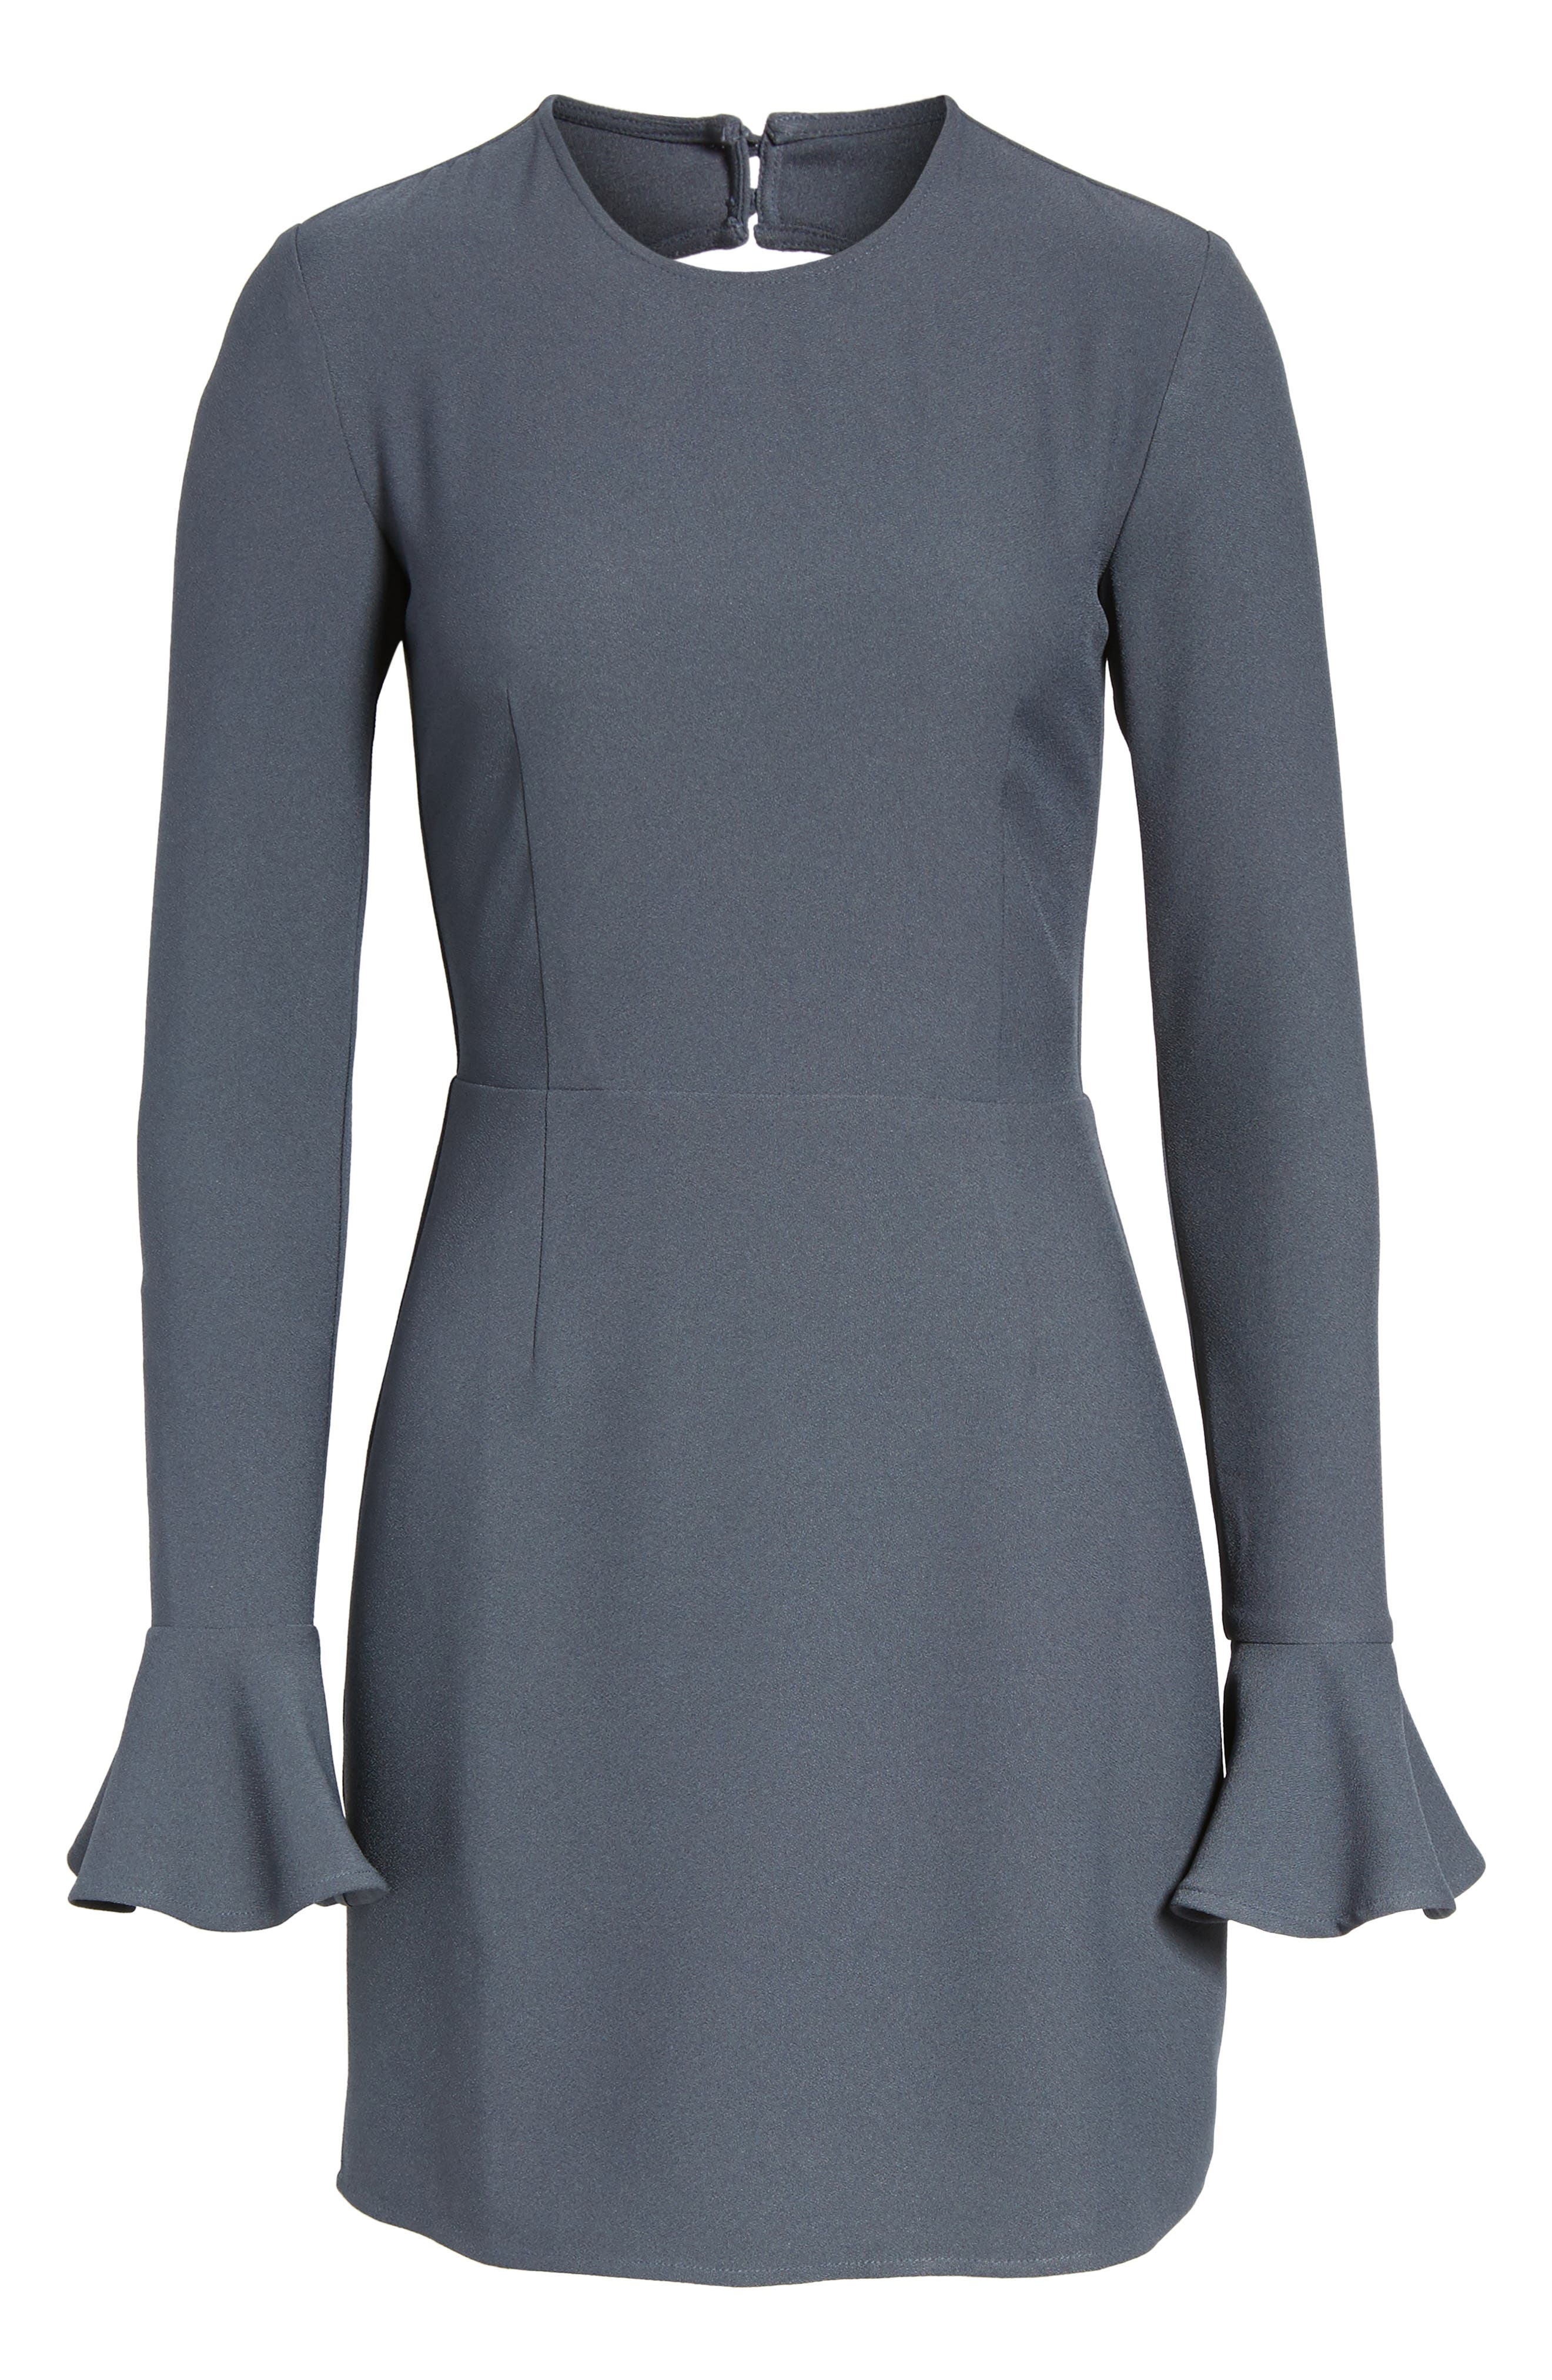 Bell Sleeve Sheath Dress,                             Alternate thumbnail 6, color,                             Navy India Ink